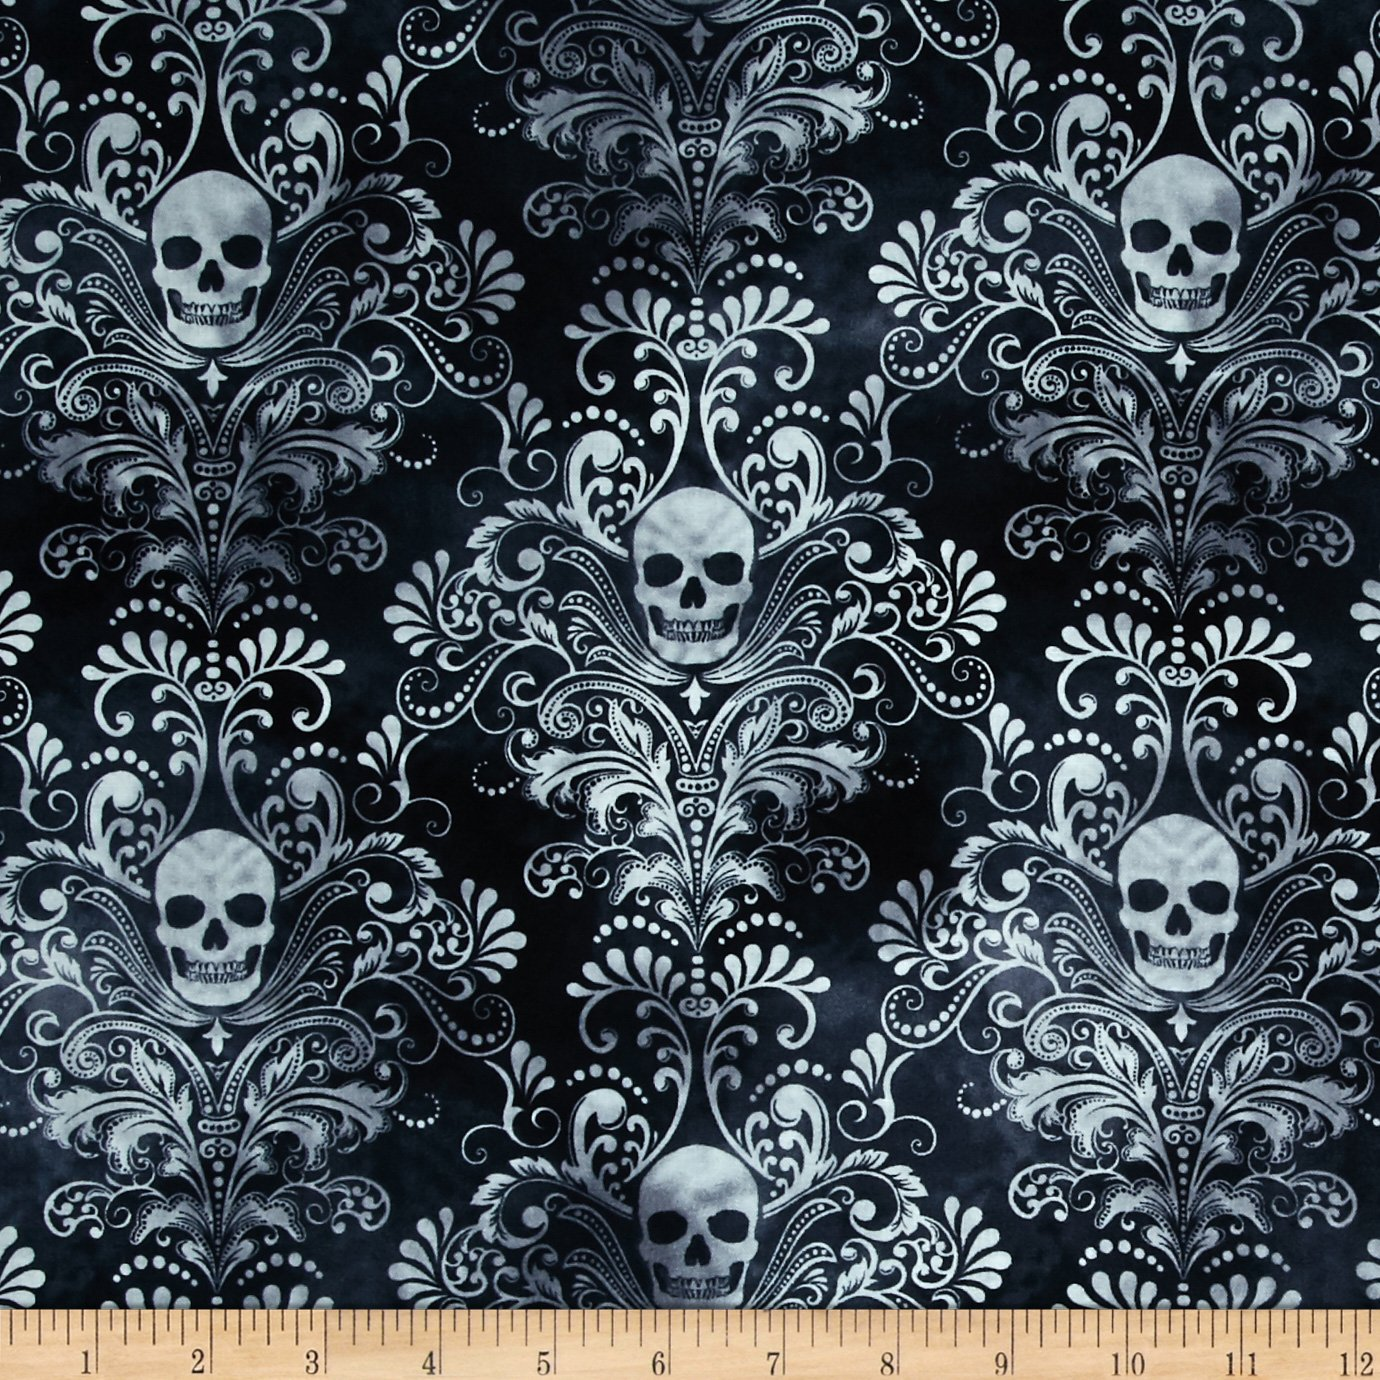 Timeless Treasures Skulls Damask Charcoal Fabric by The Yard, Charcoal 0420528